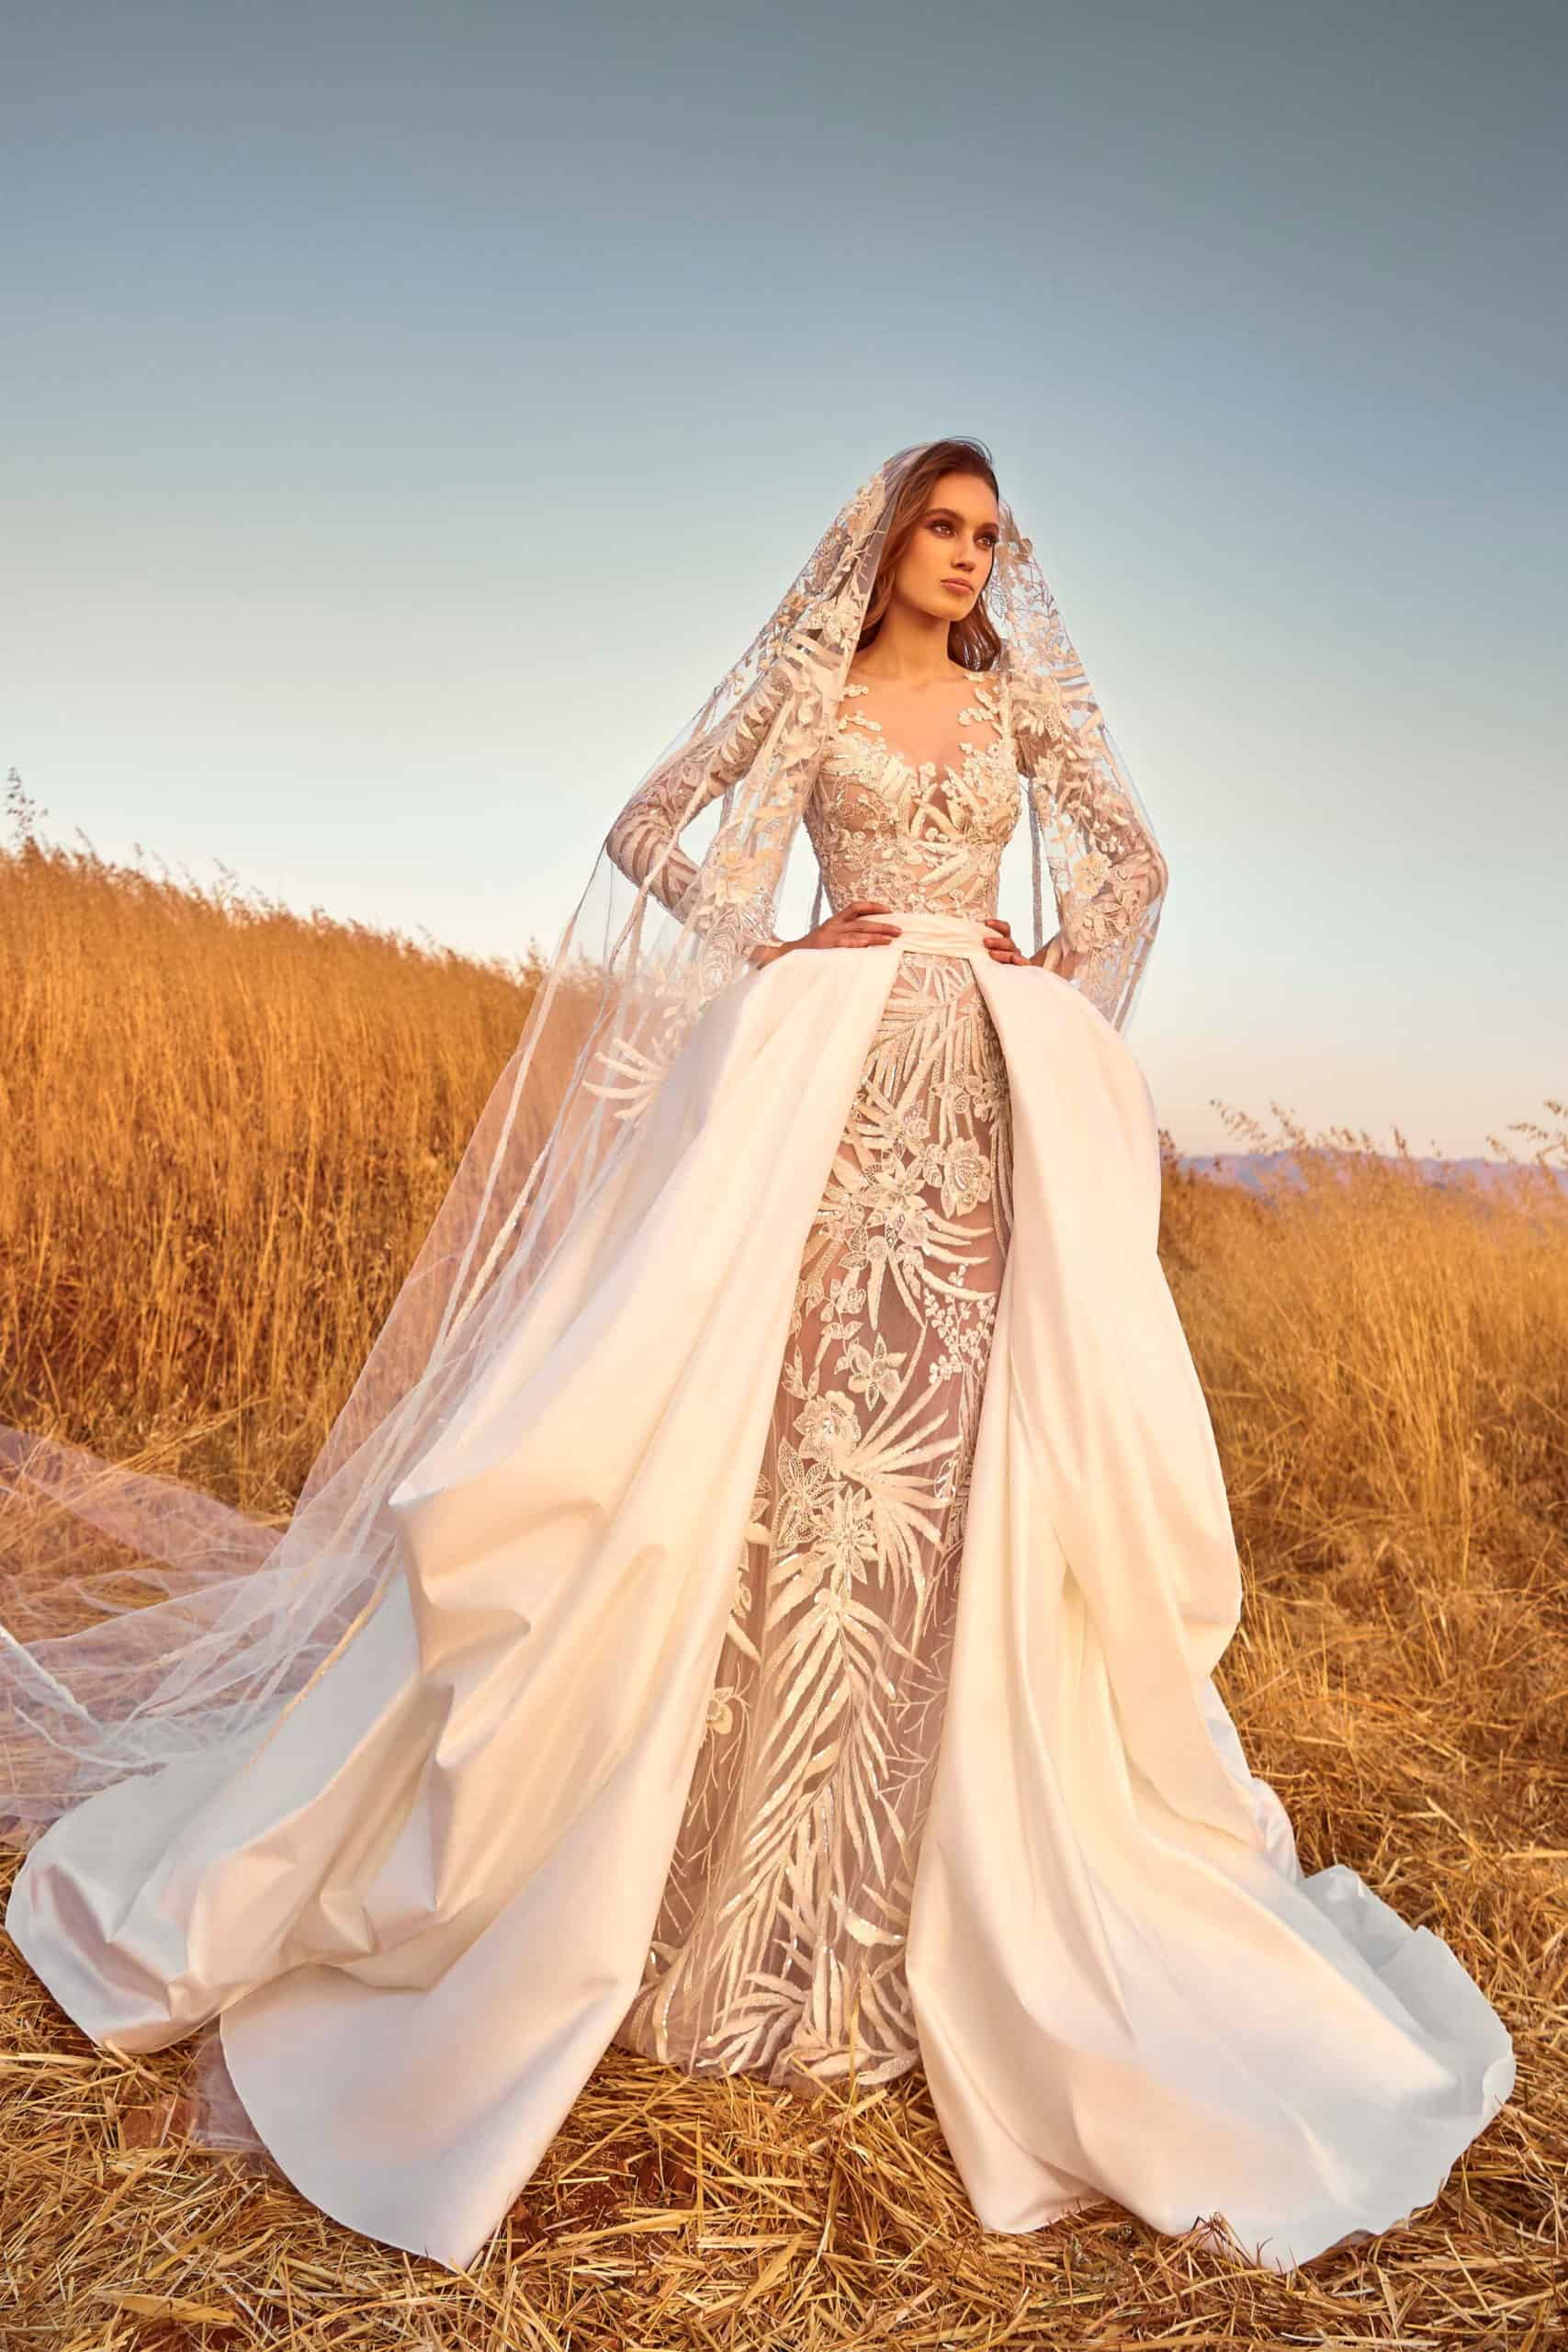 lace wedding dress with extra wide satin skirt by Zuhair Murad